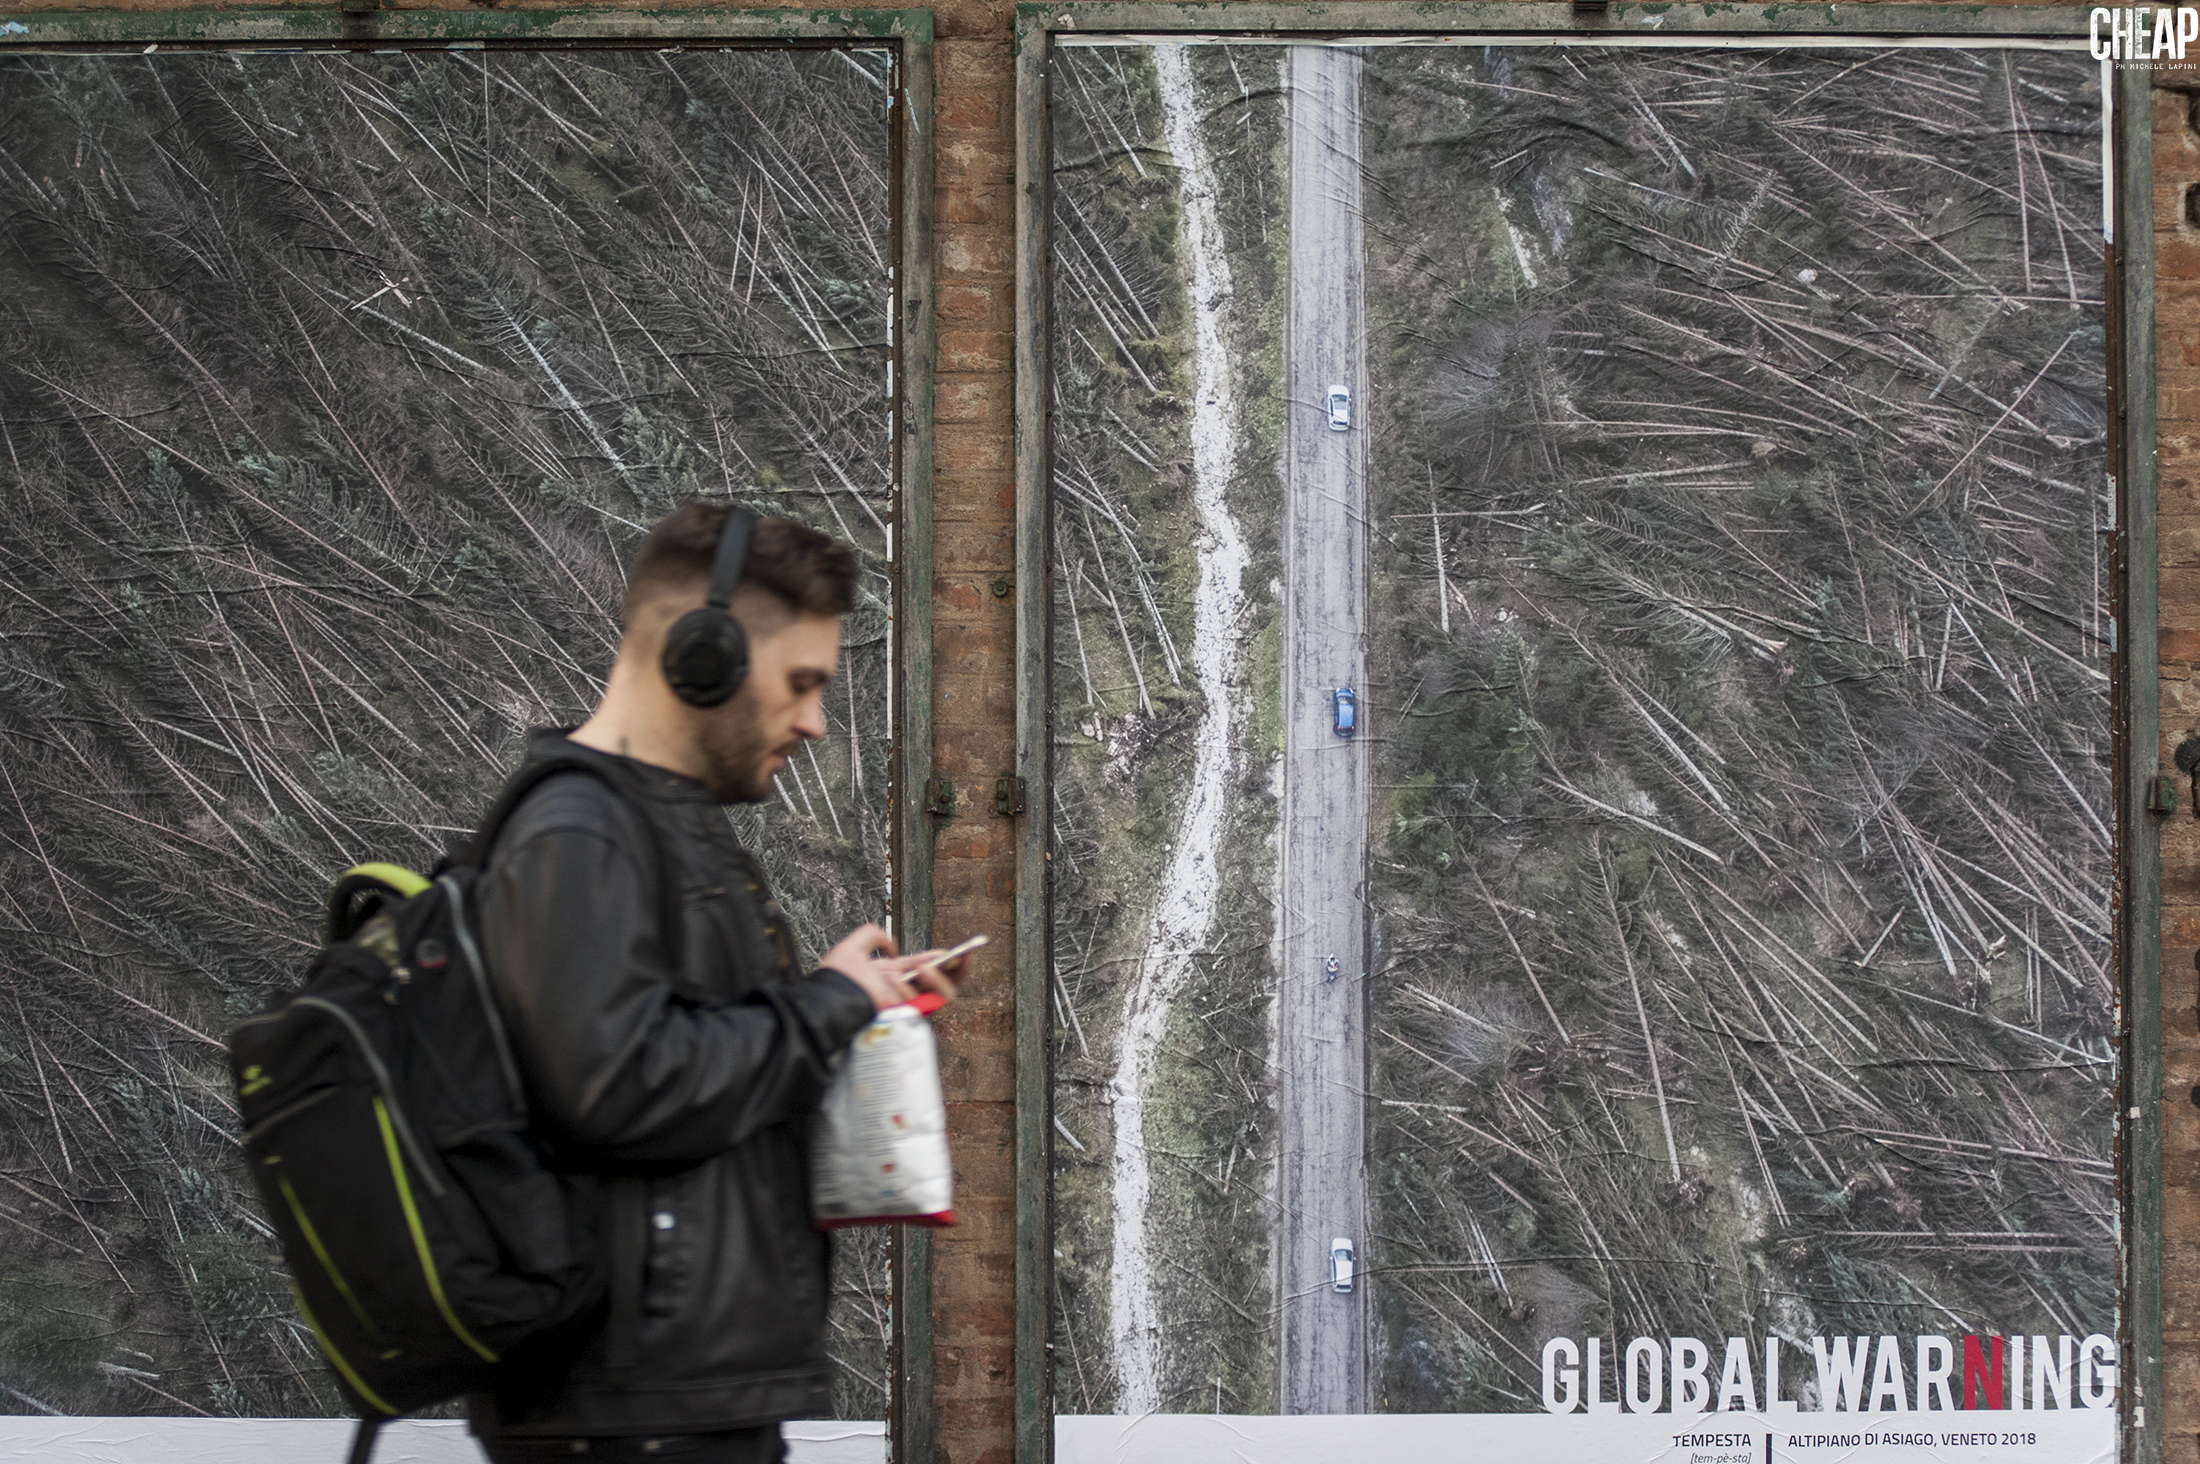 GLOBAL WARNING | Michele Lapini | CHEAP street poster action